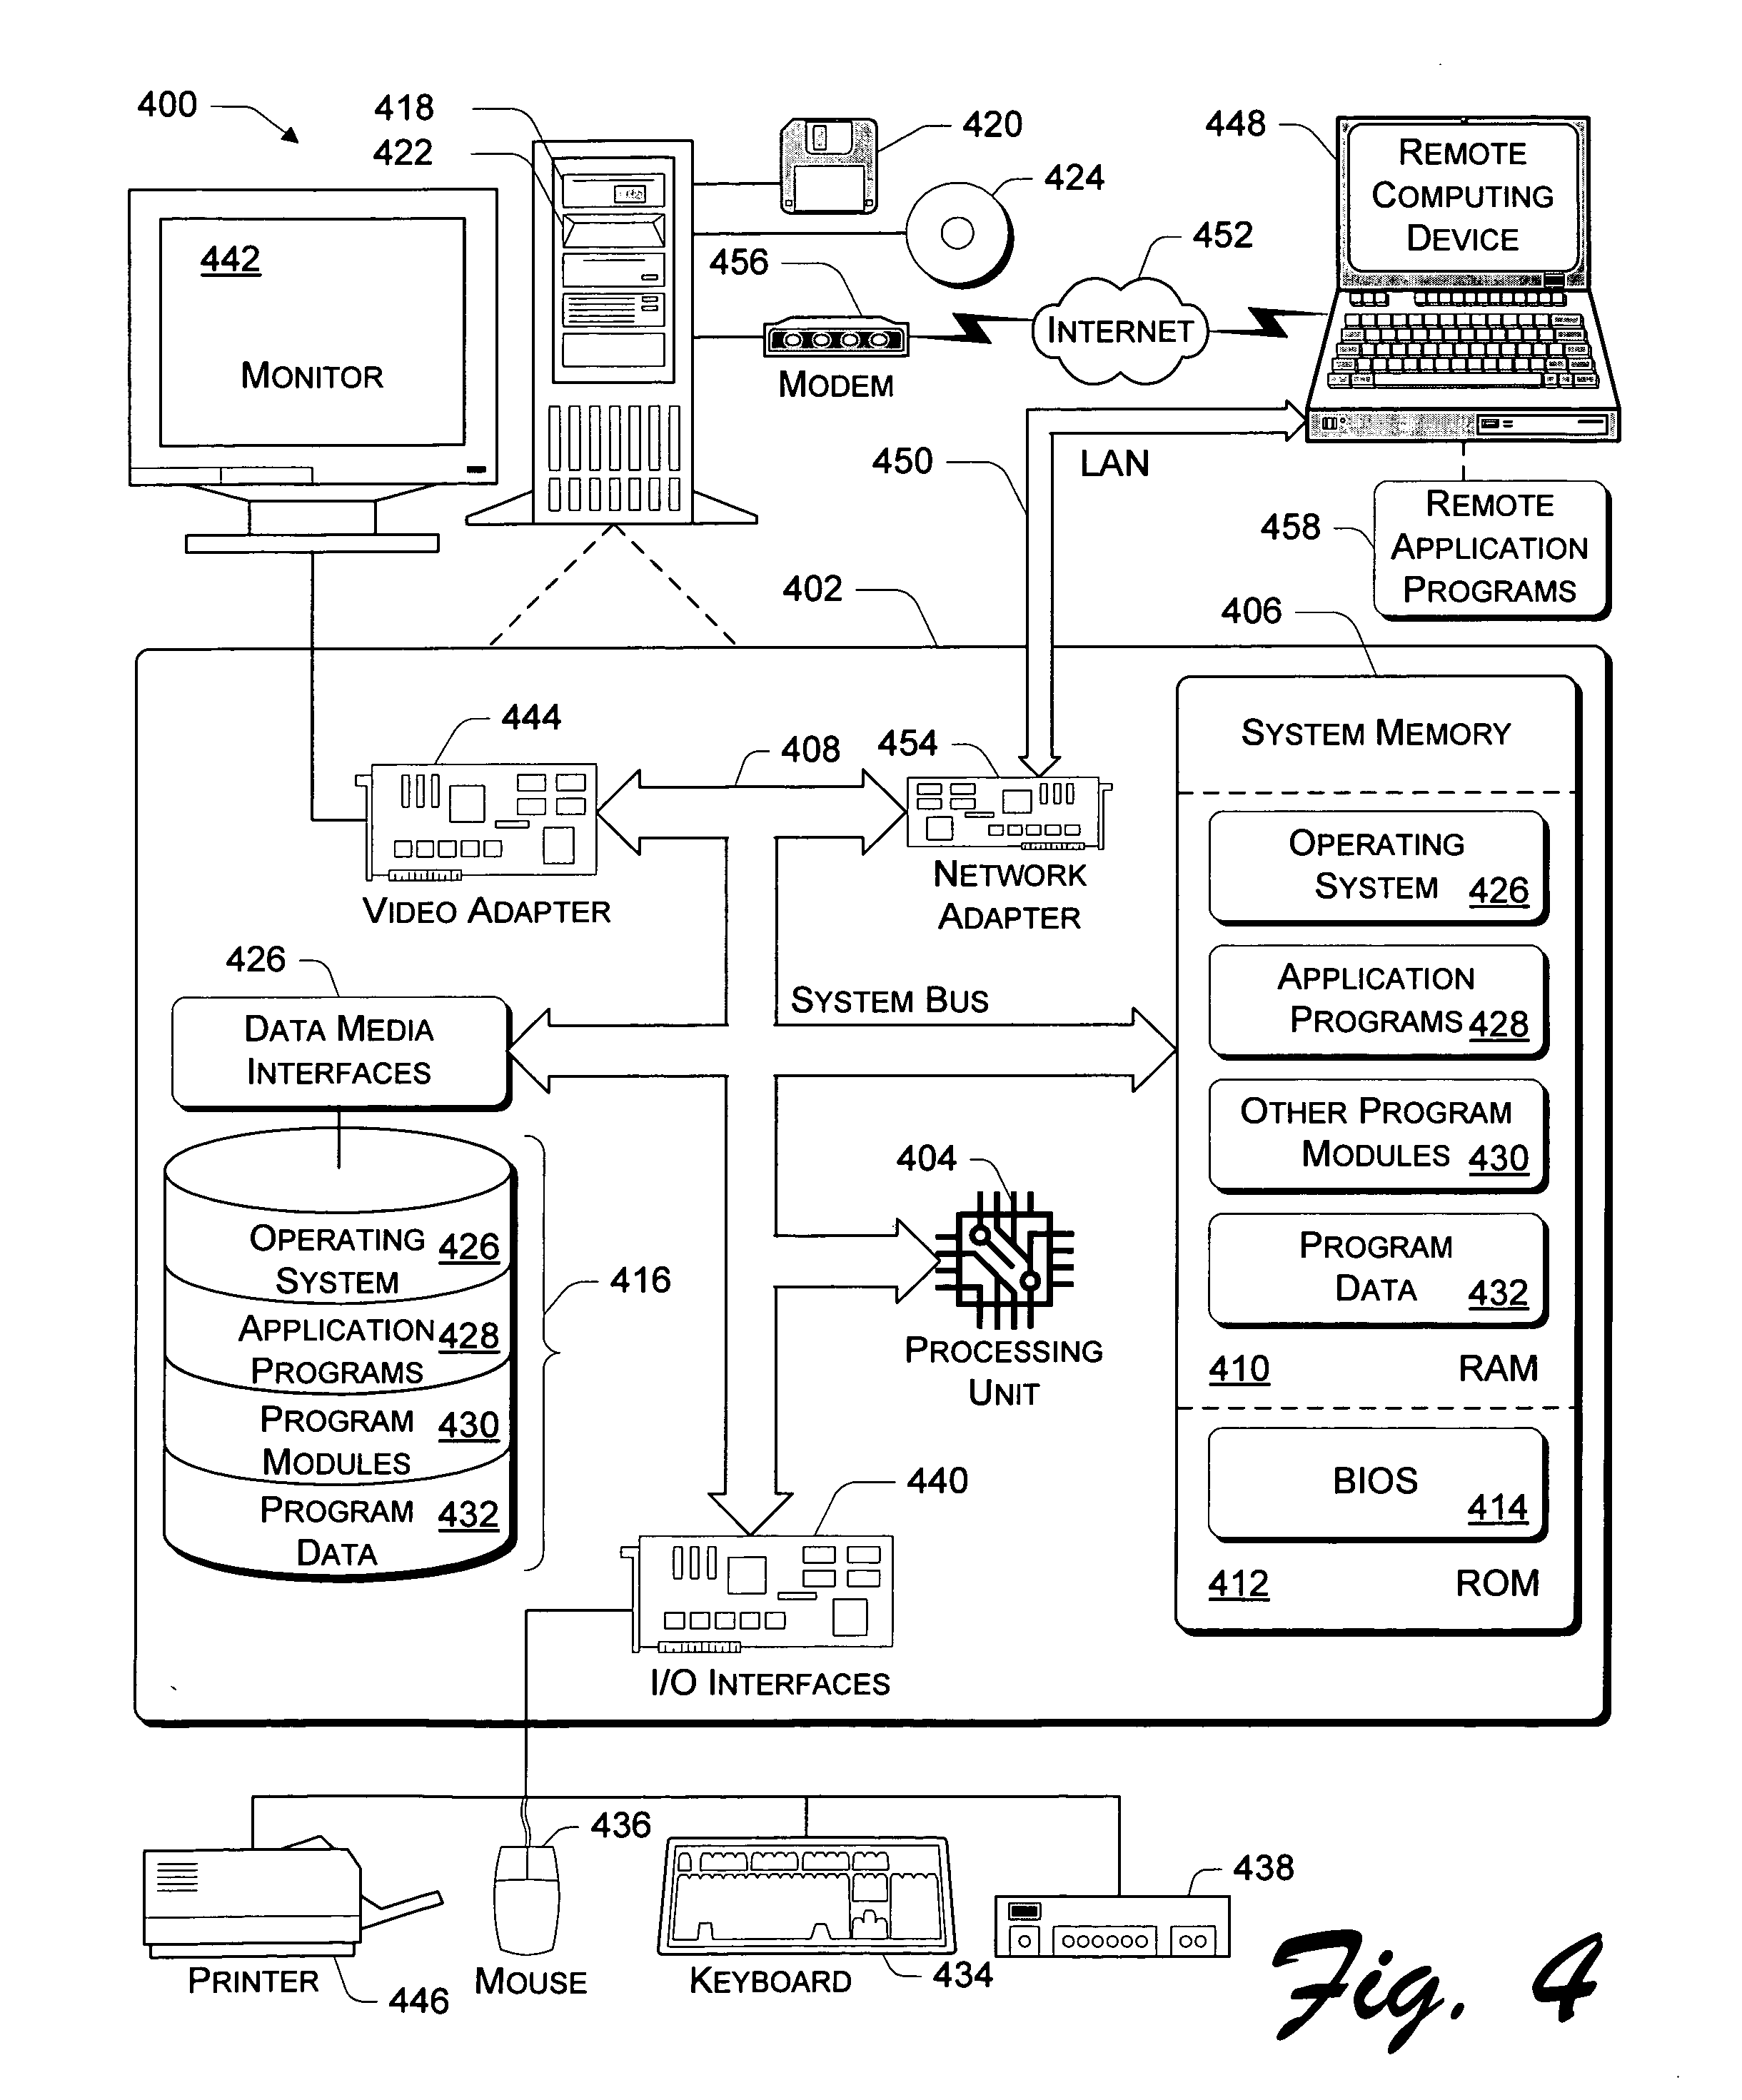 US20050246716A1 - Application program interface for network